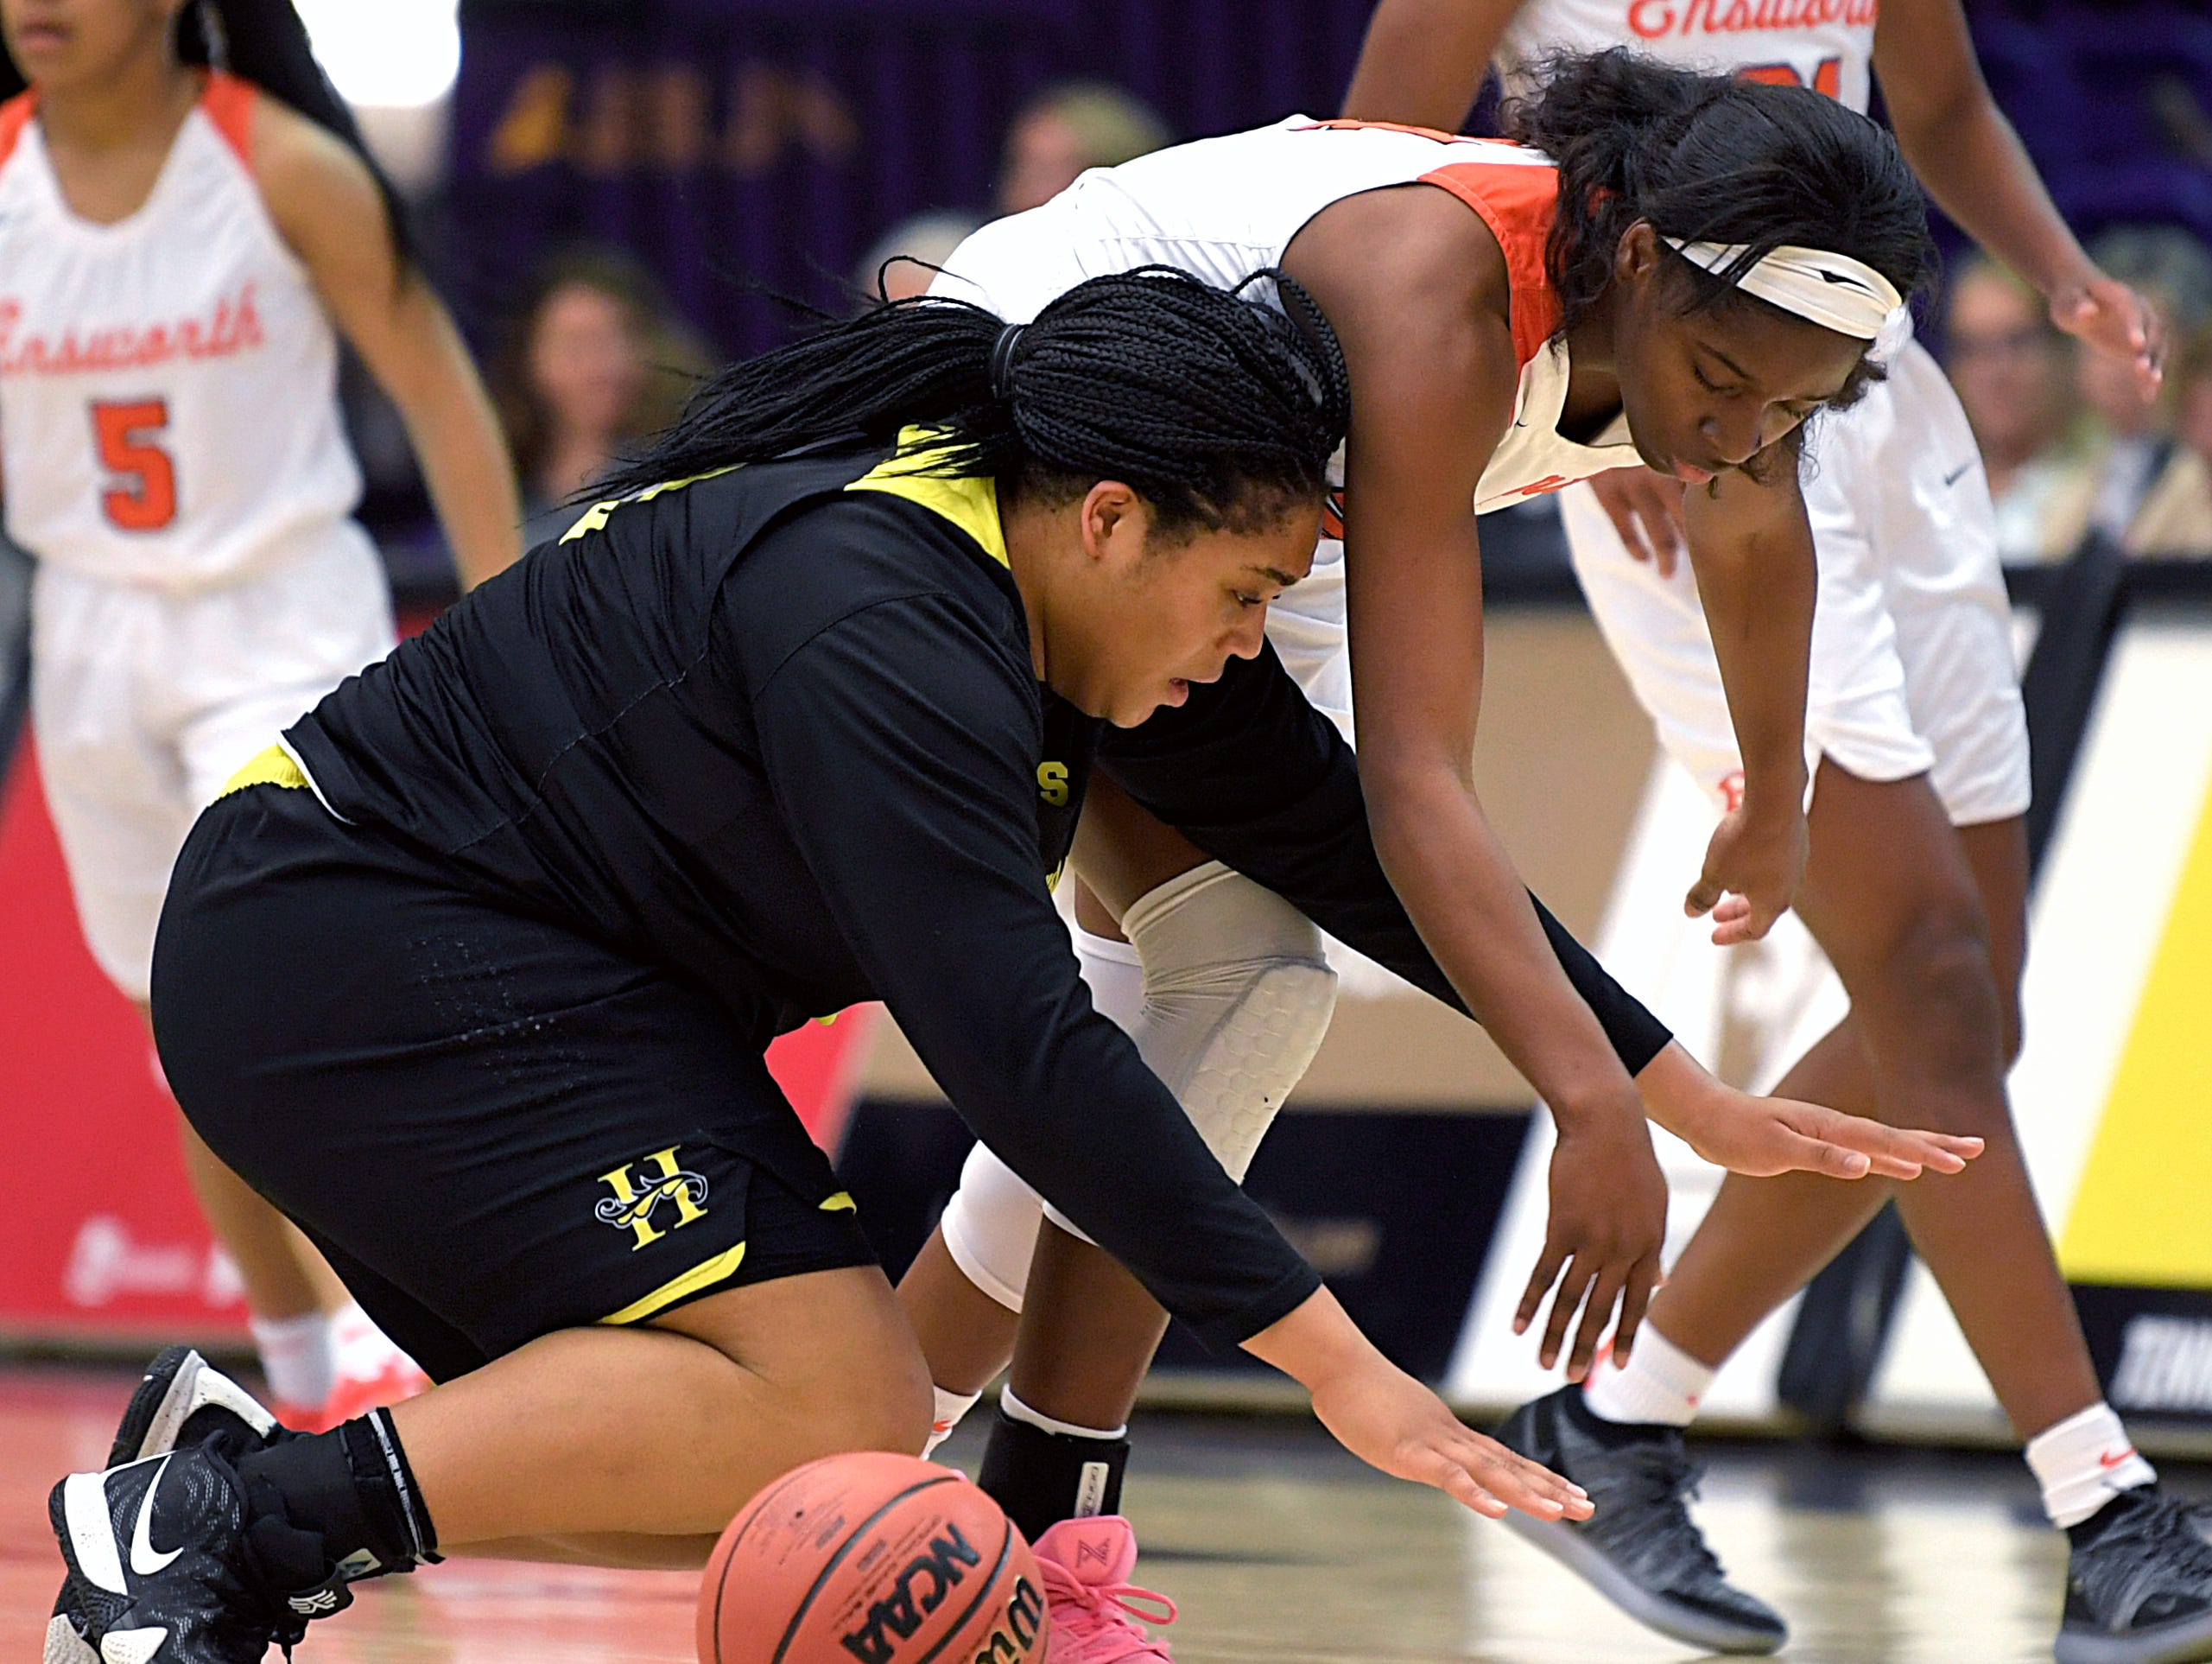 Hutchison's Kaia Barnett (32) and Ensworth's Dontavia Waggoner (24) fight for a loose ball during the TSSAA Division II Class AA semifinals at Lipscomb University's Allen Arena in Nashville on Thursday, Feb. 28, 2019.